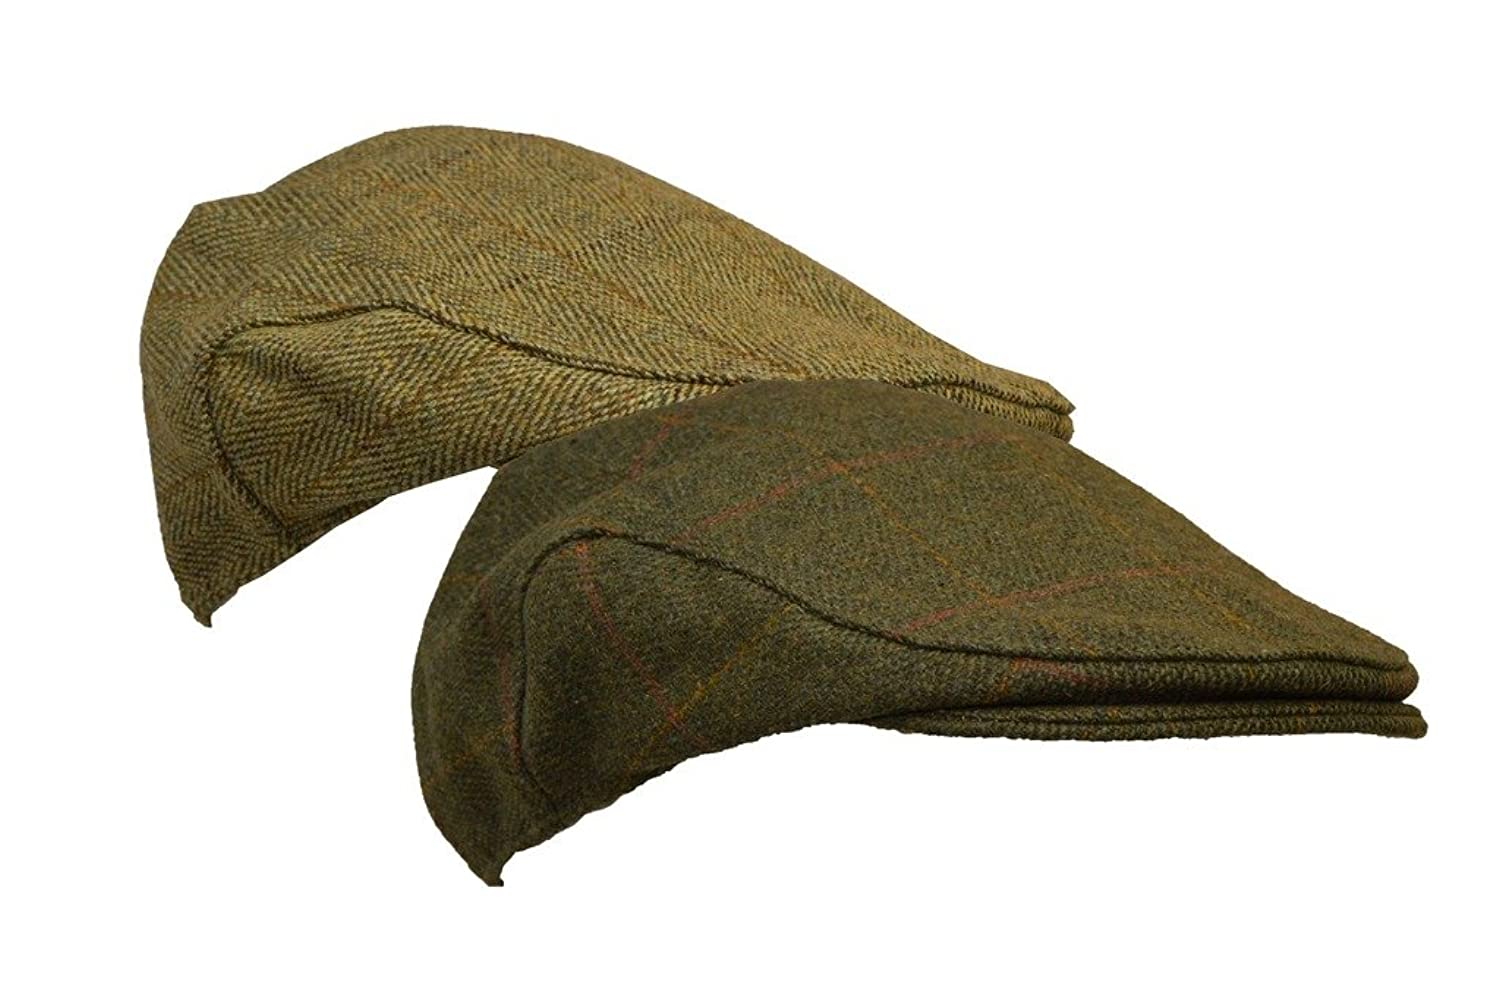 1950s Mens Hats | 50s Vintage Men's Hats Derby Tweed Flat Cap Hunting Shooting Countrywear Hat $22.02 AT vintagedancer.com